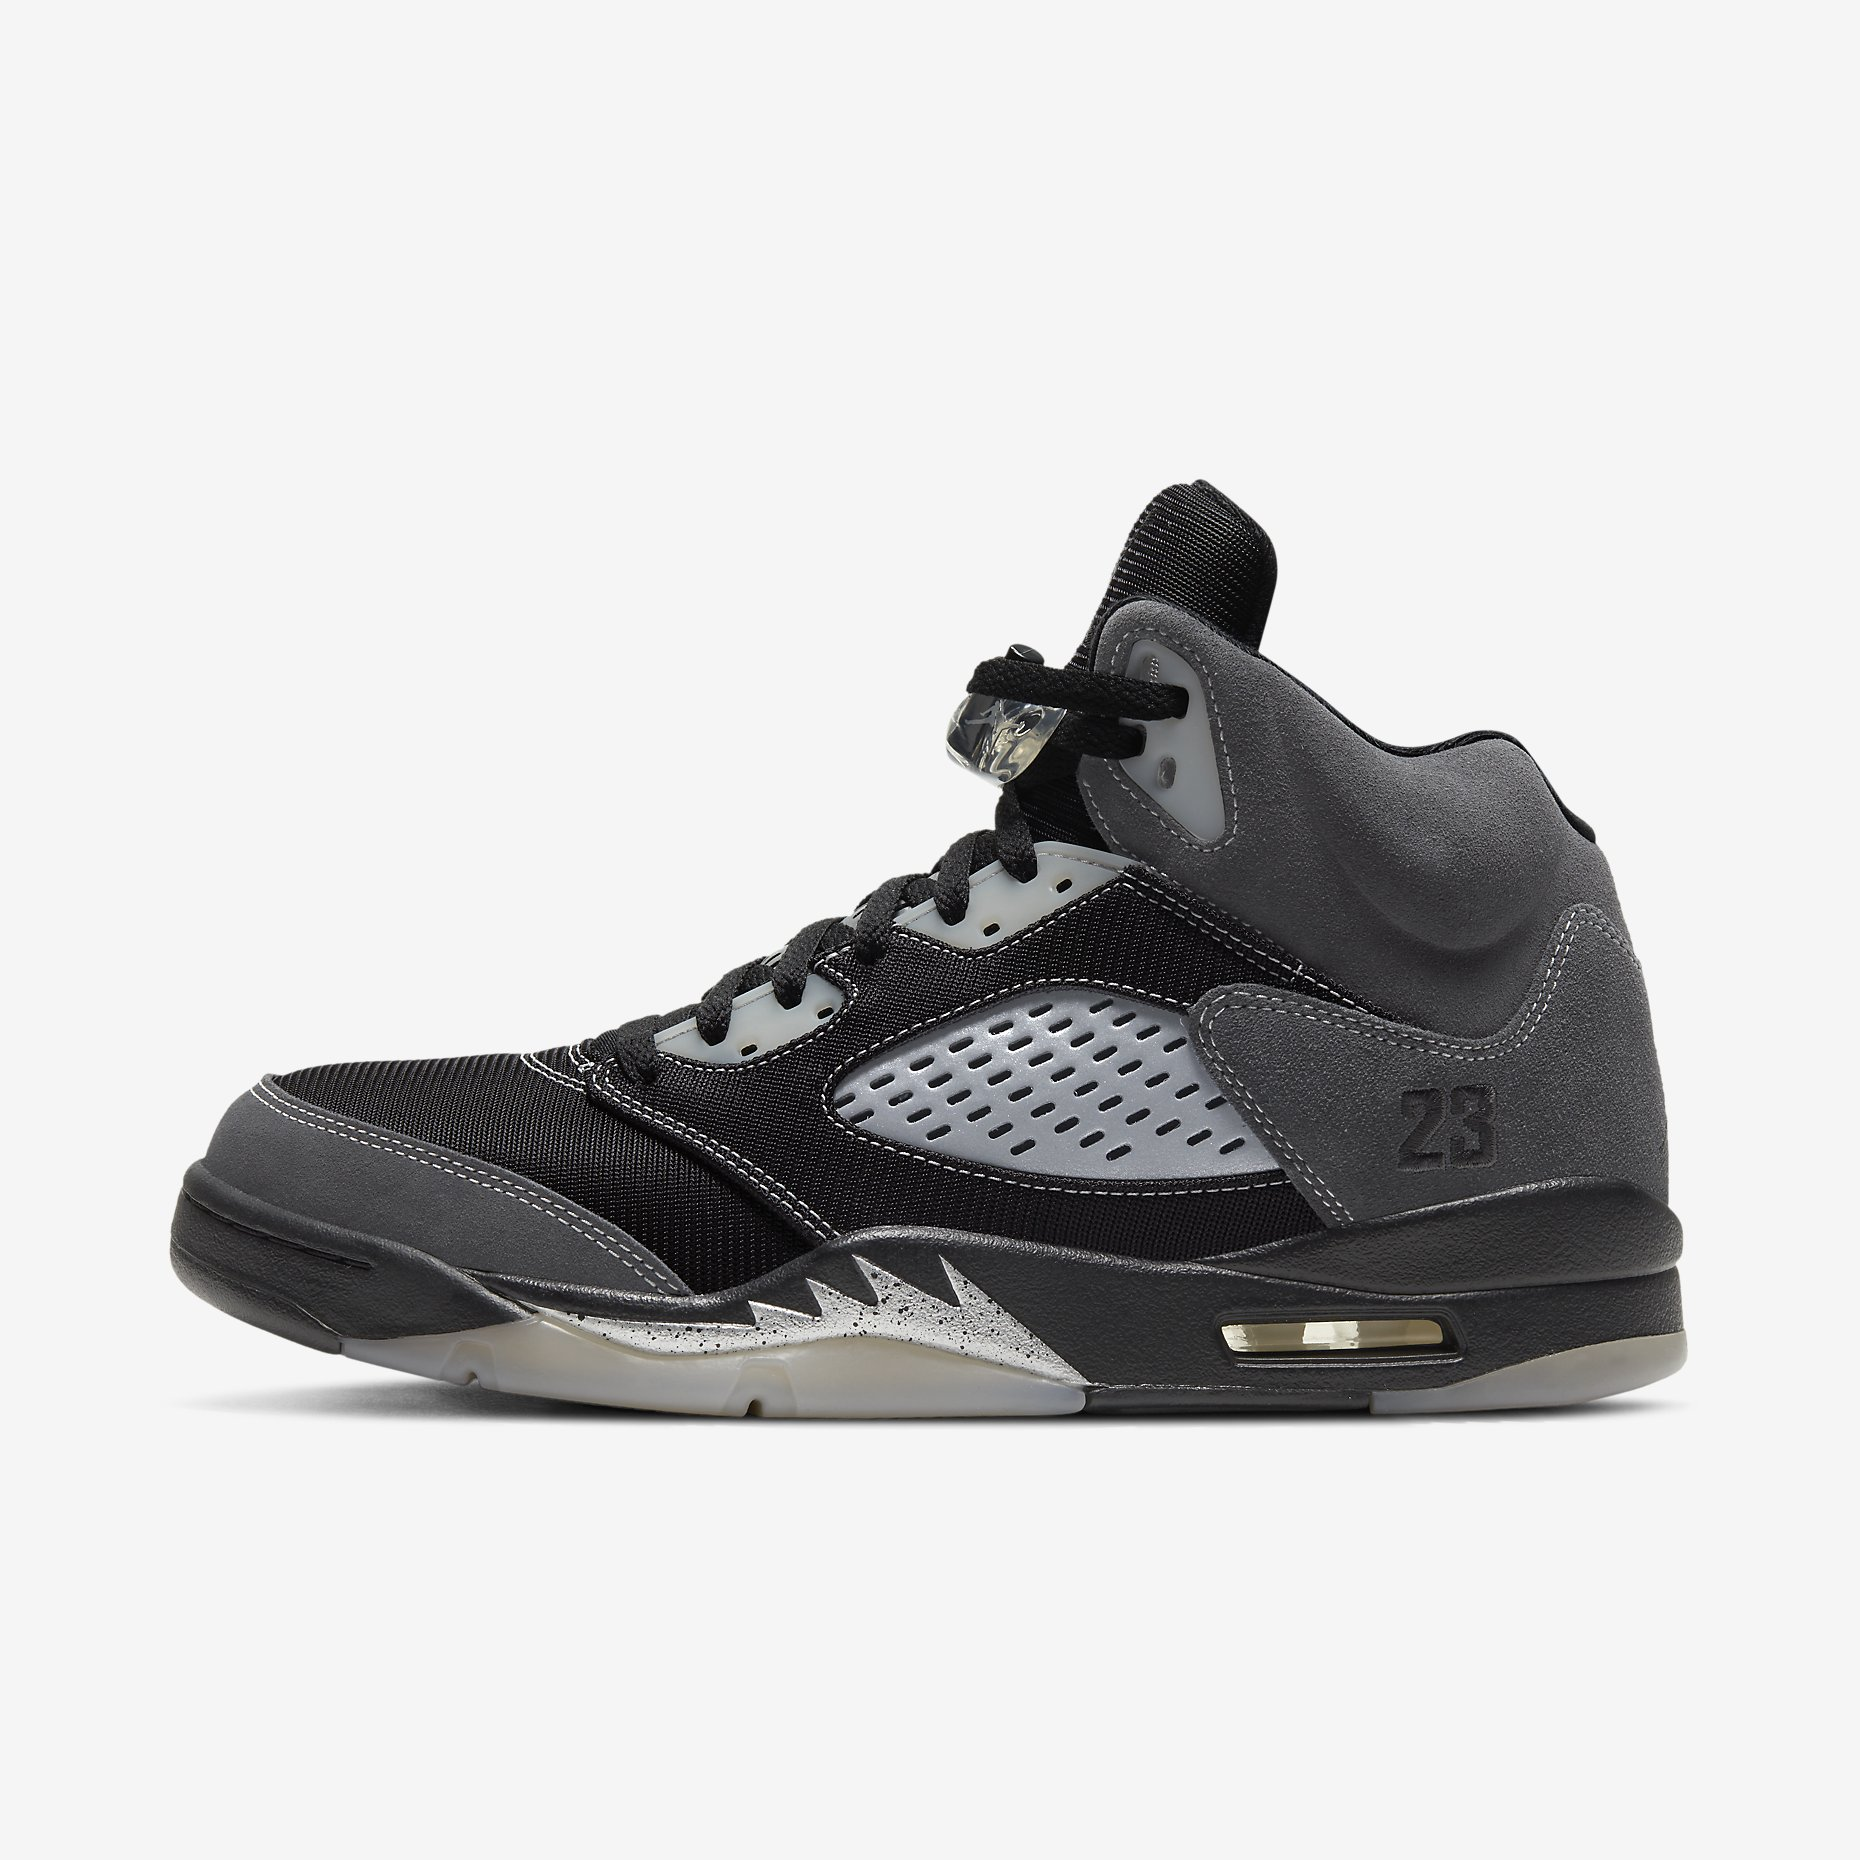 Air Jordan 5 Retro 'Anthracite'}